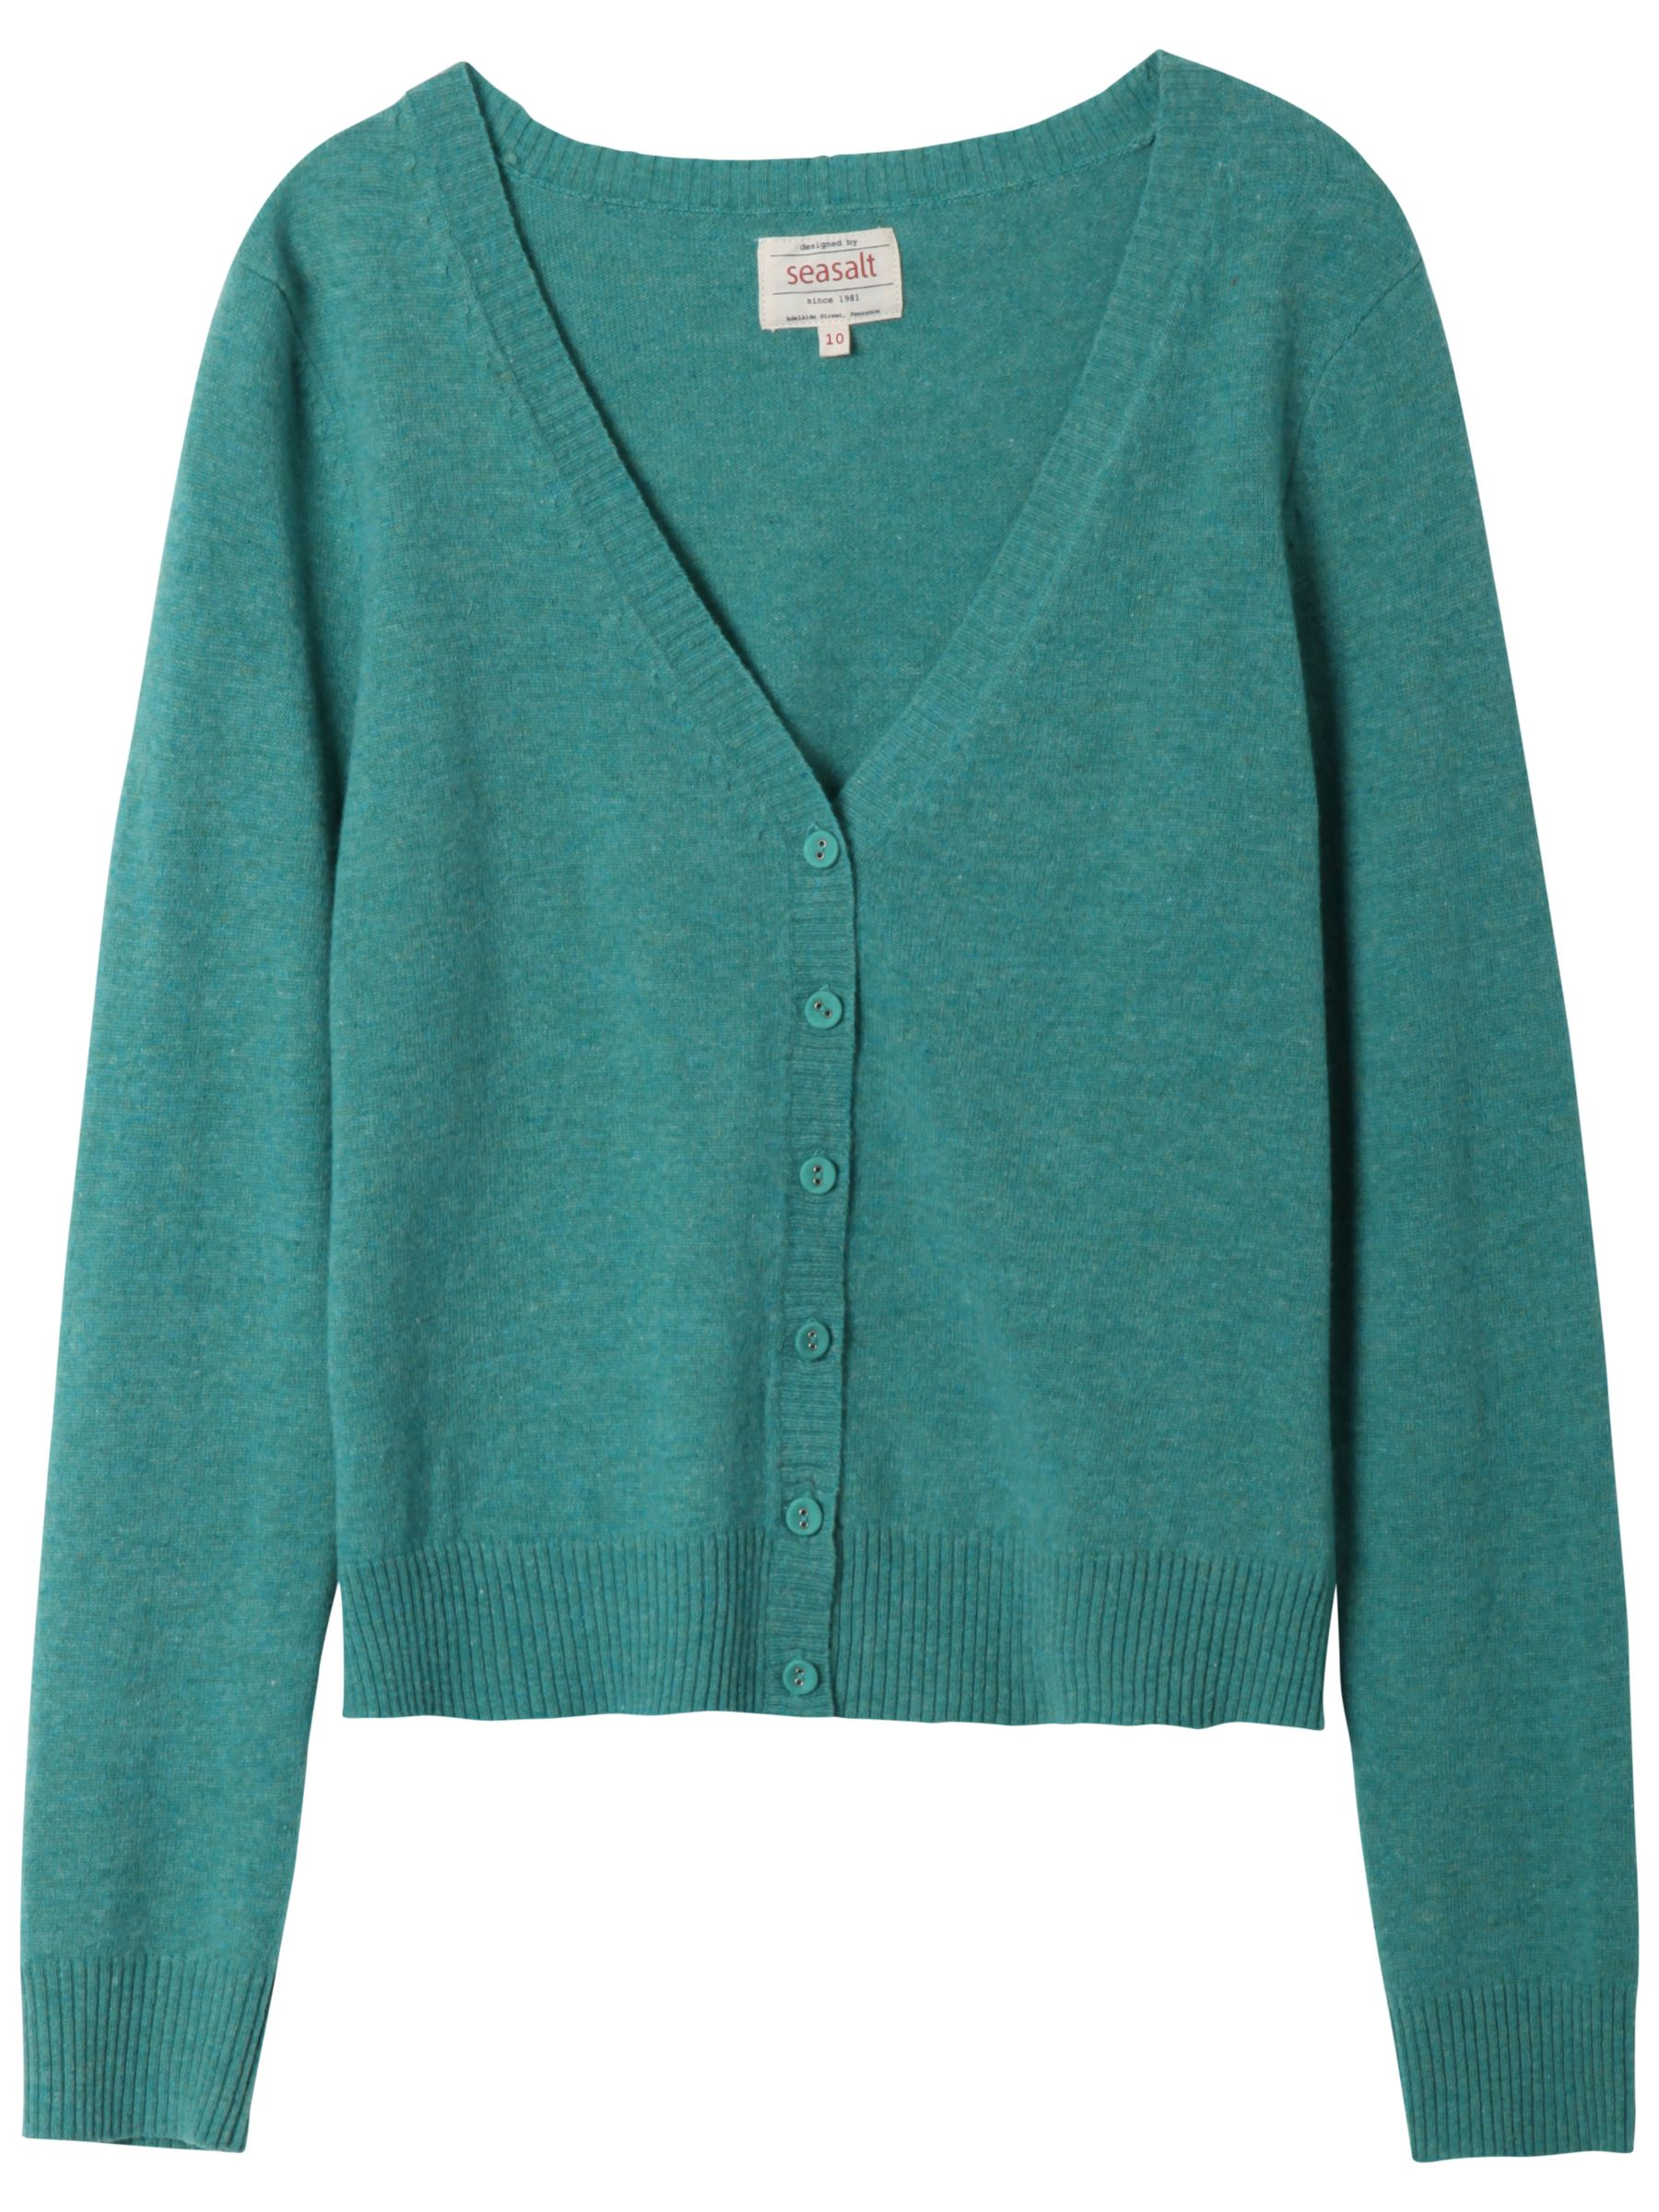 Seasalt Tova Cardigan, Emerald